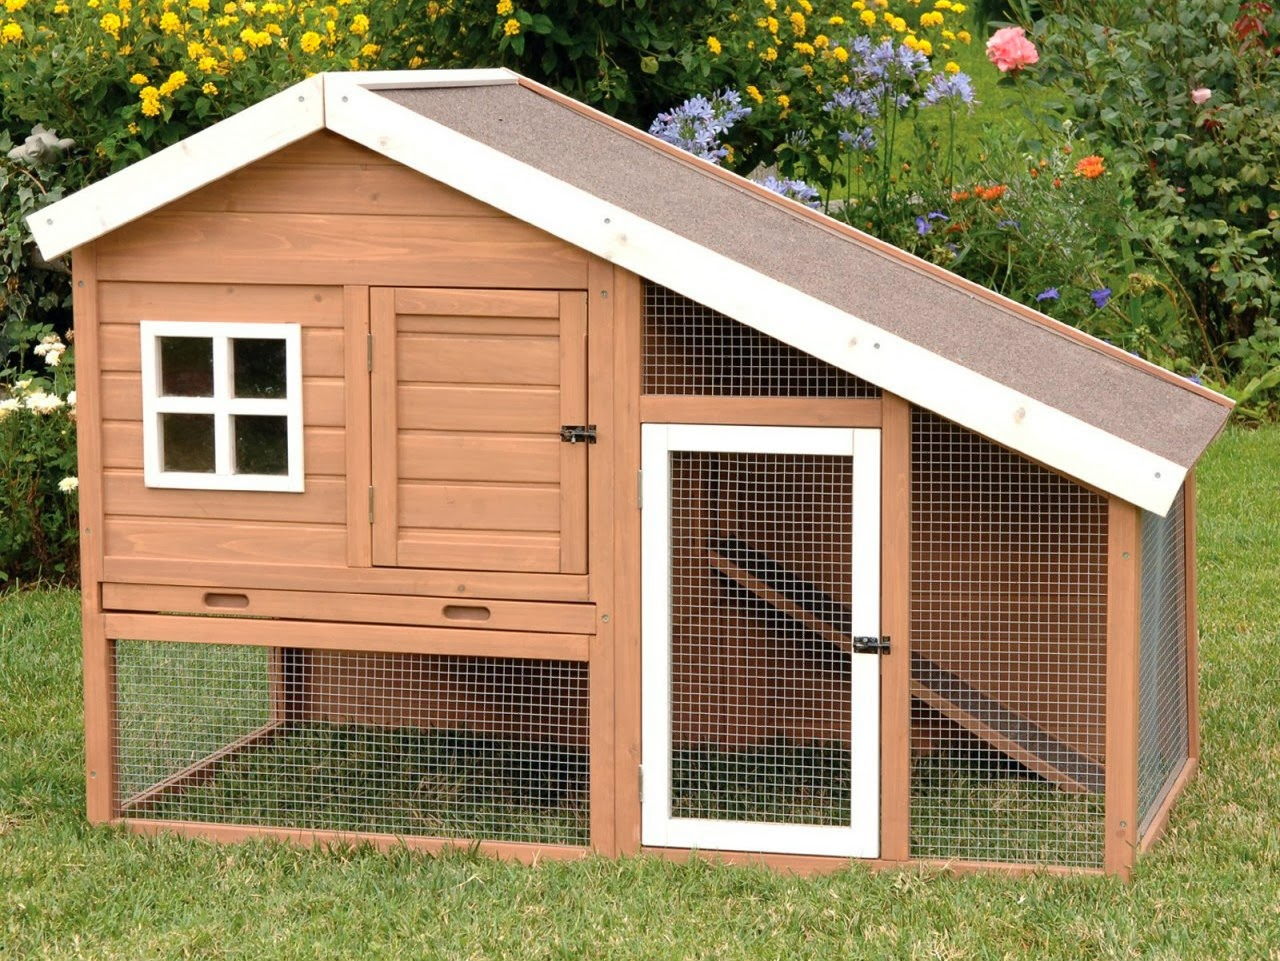 Chicken house plans chicken house designs - Small dog house blueprints ...